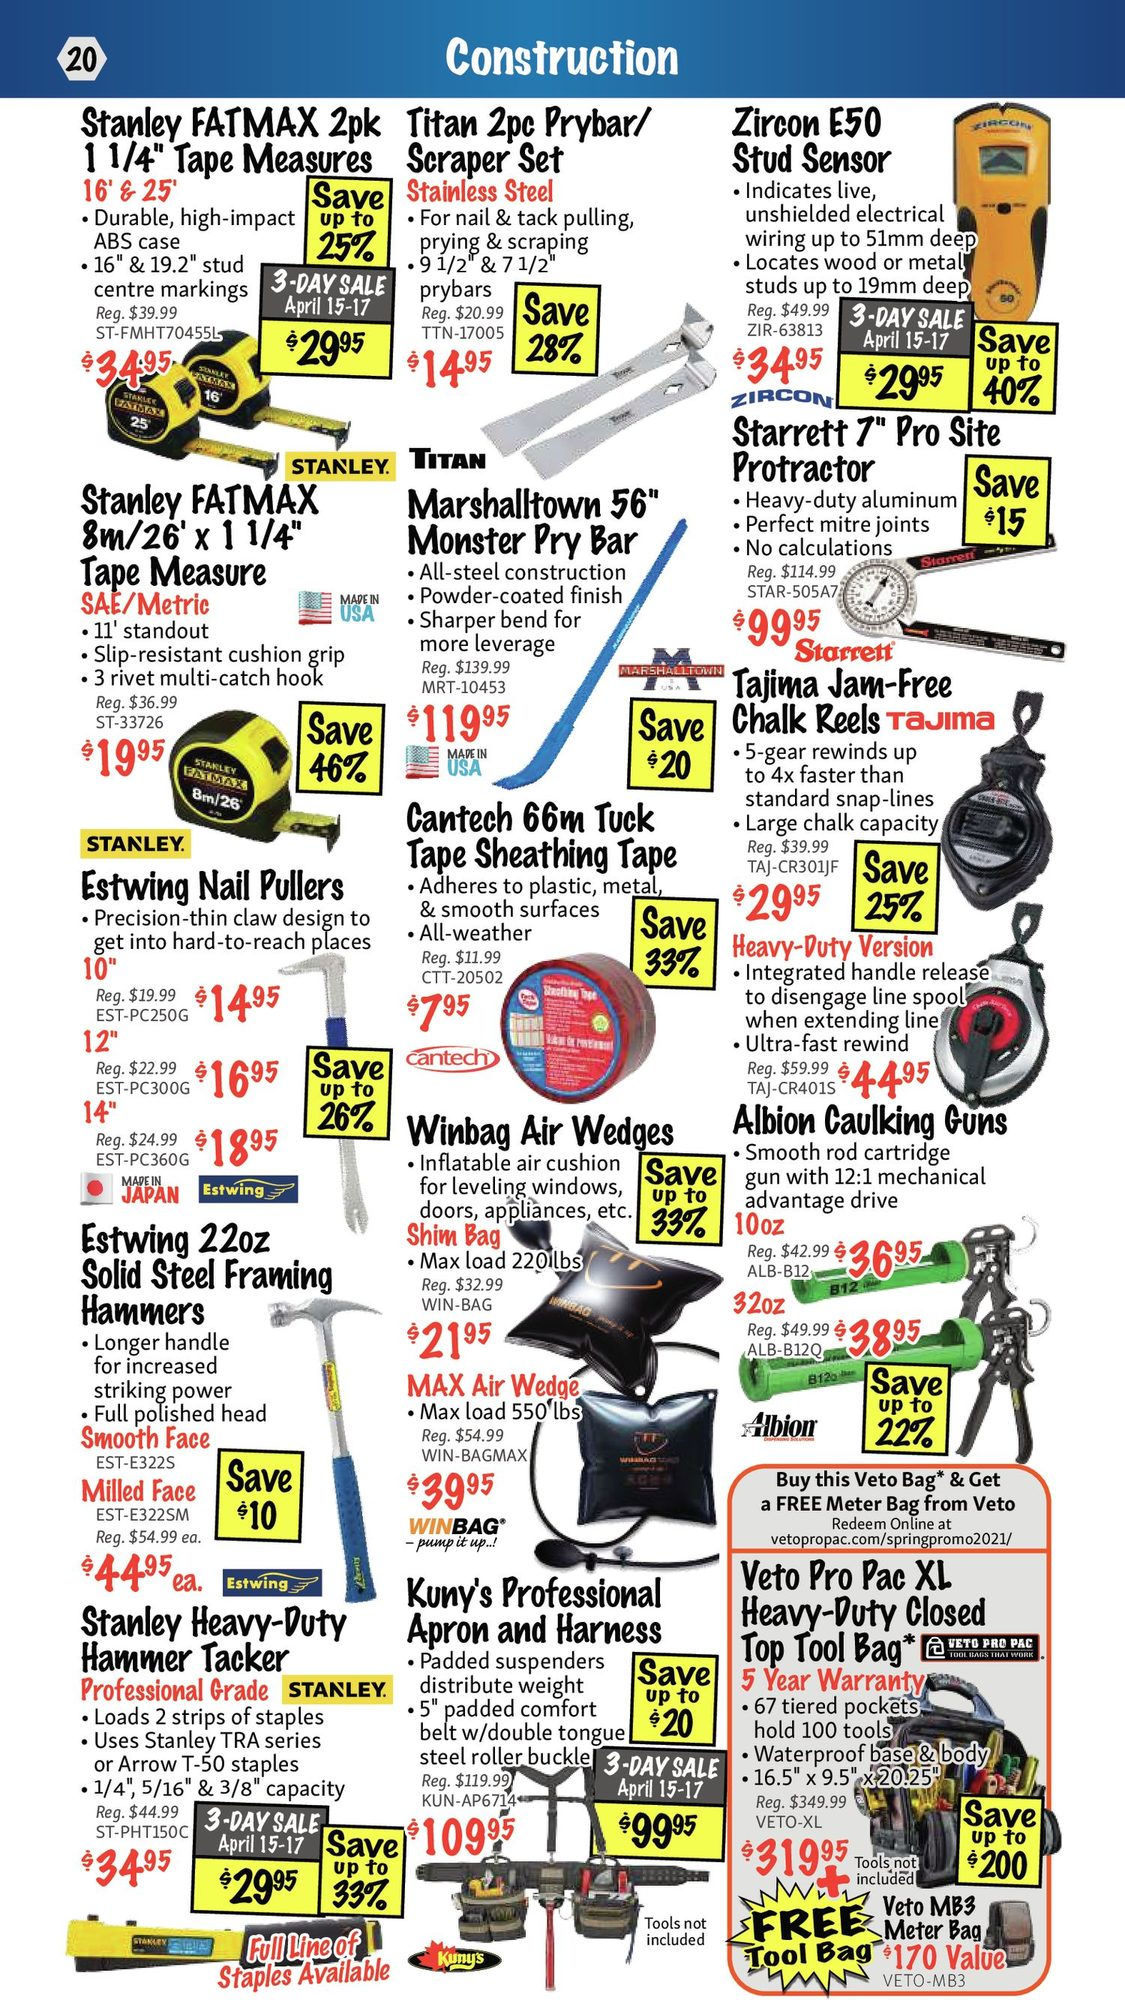 KMS Tools - Hand Tools, Air Tools & Compressor Sale - Page 20